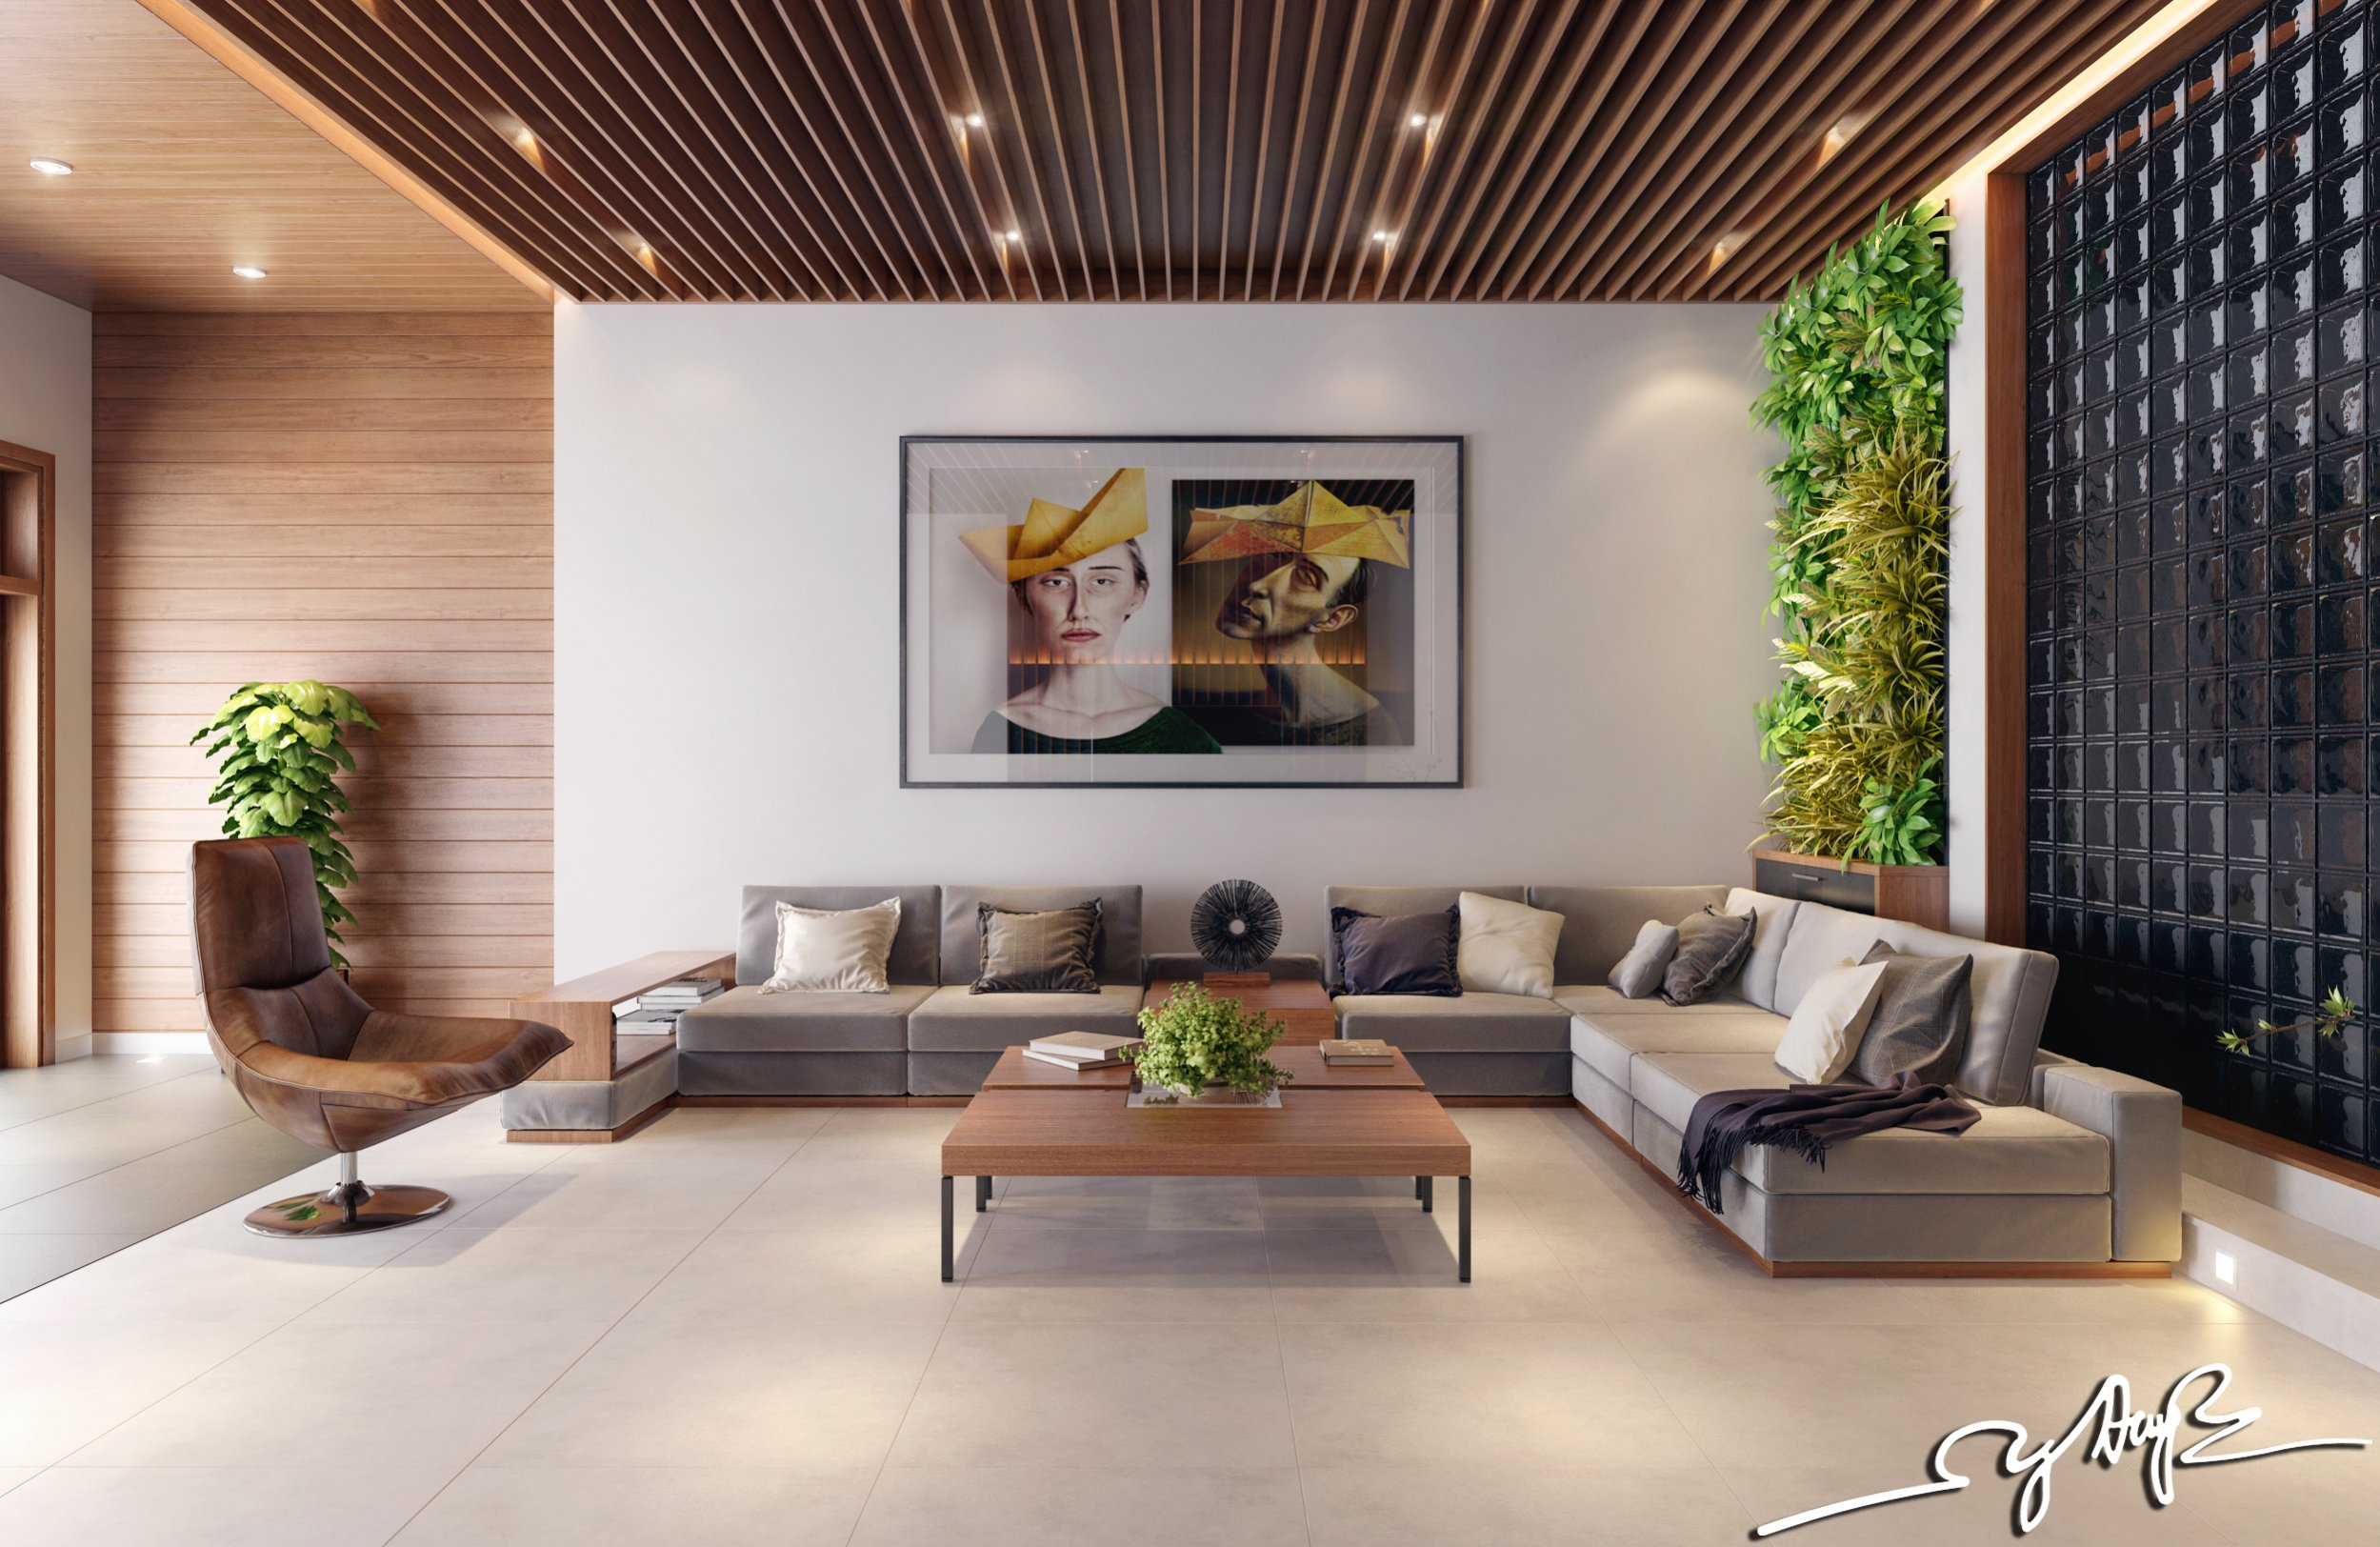 Interior design close to nature rich wood themes and for Home vertical garden